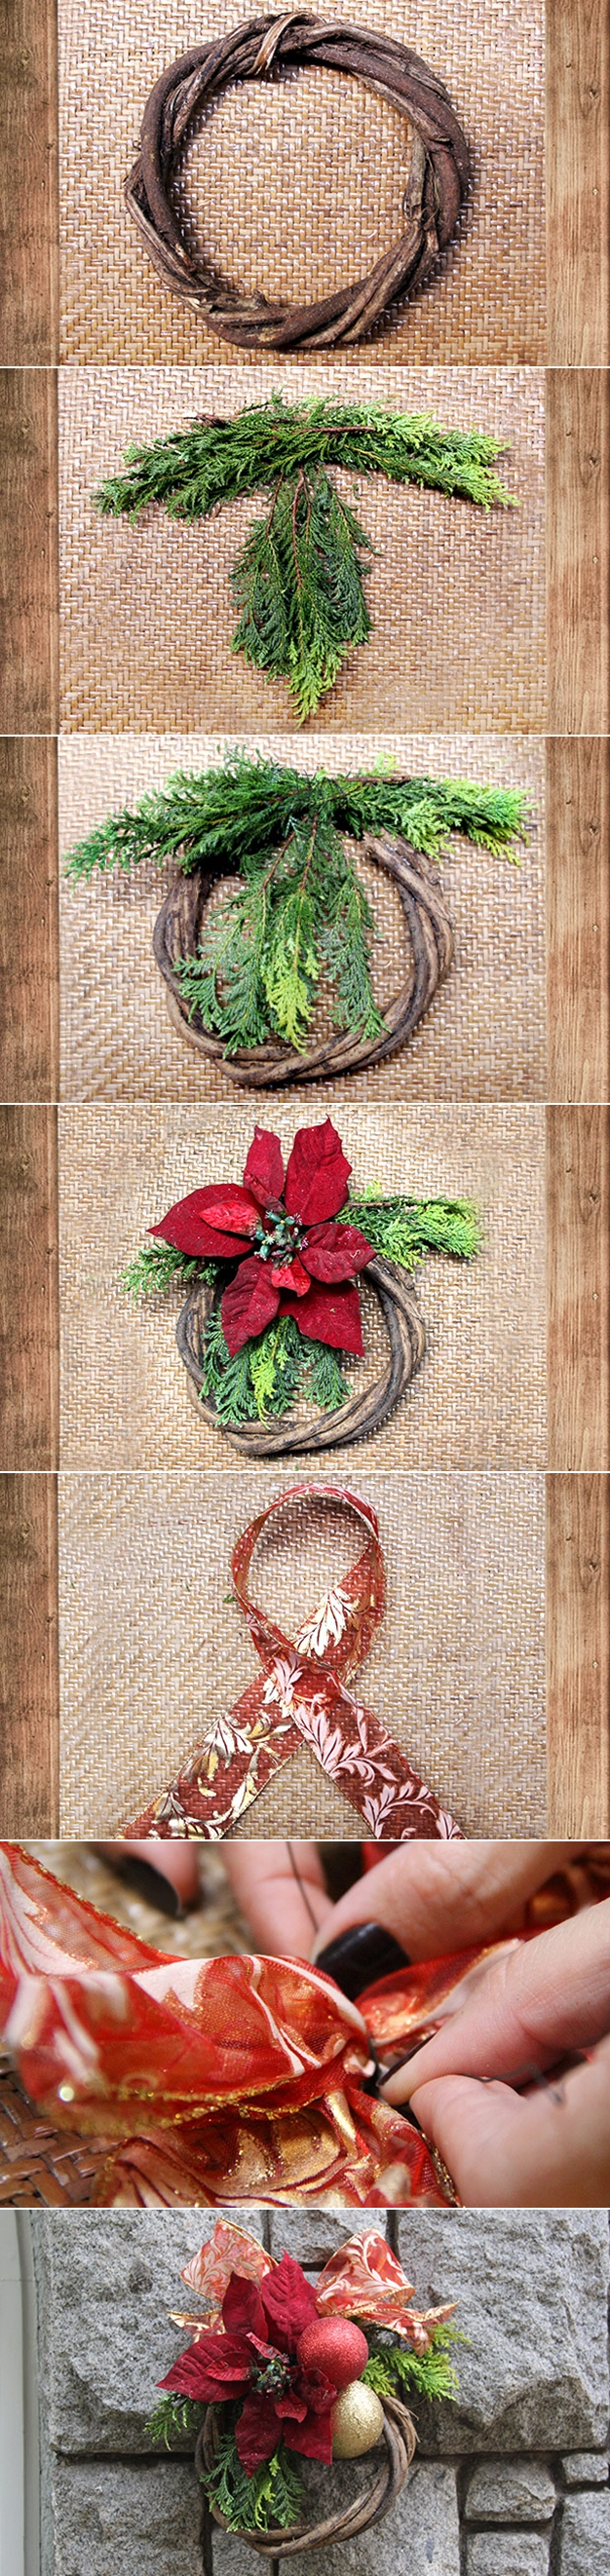 homemade-christmas-wreath-tutorial-wood